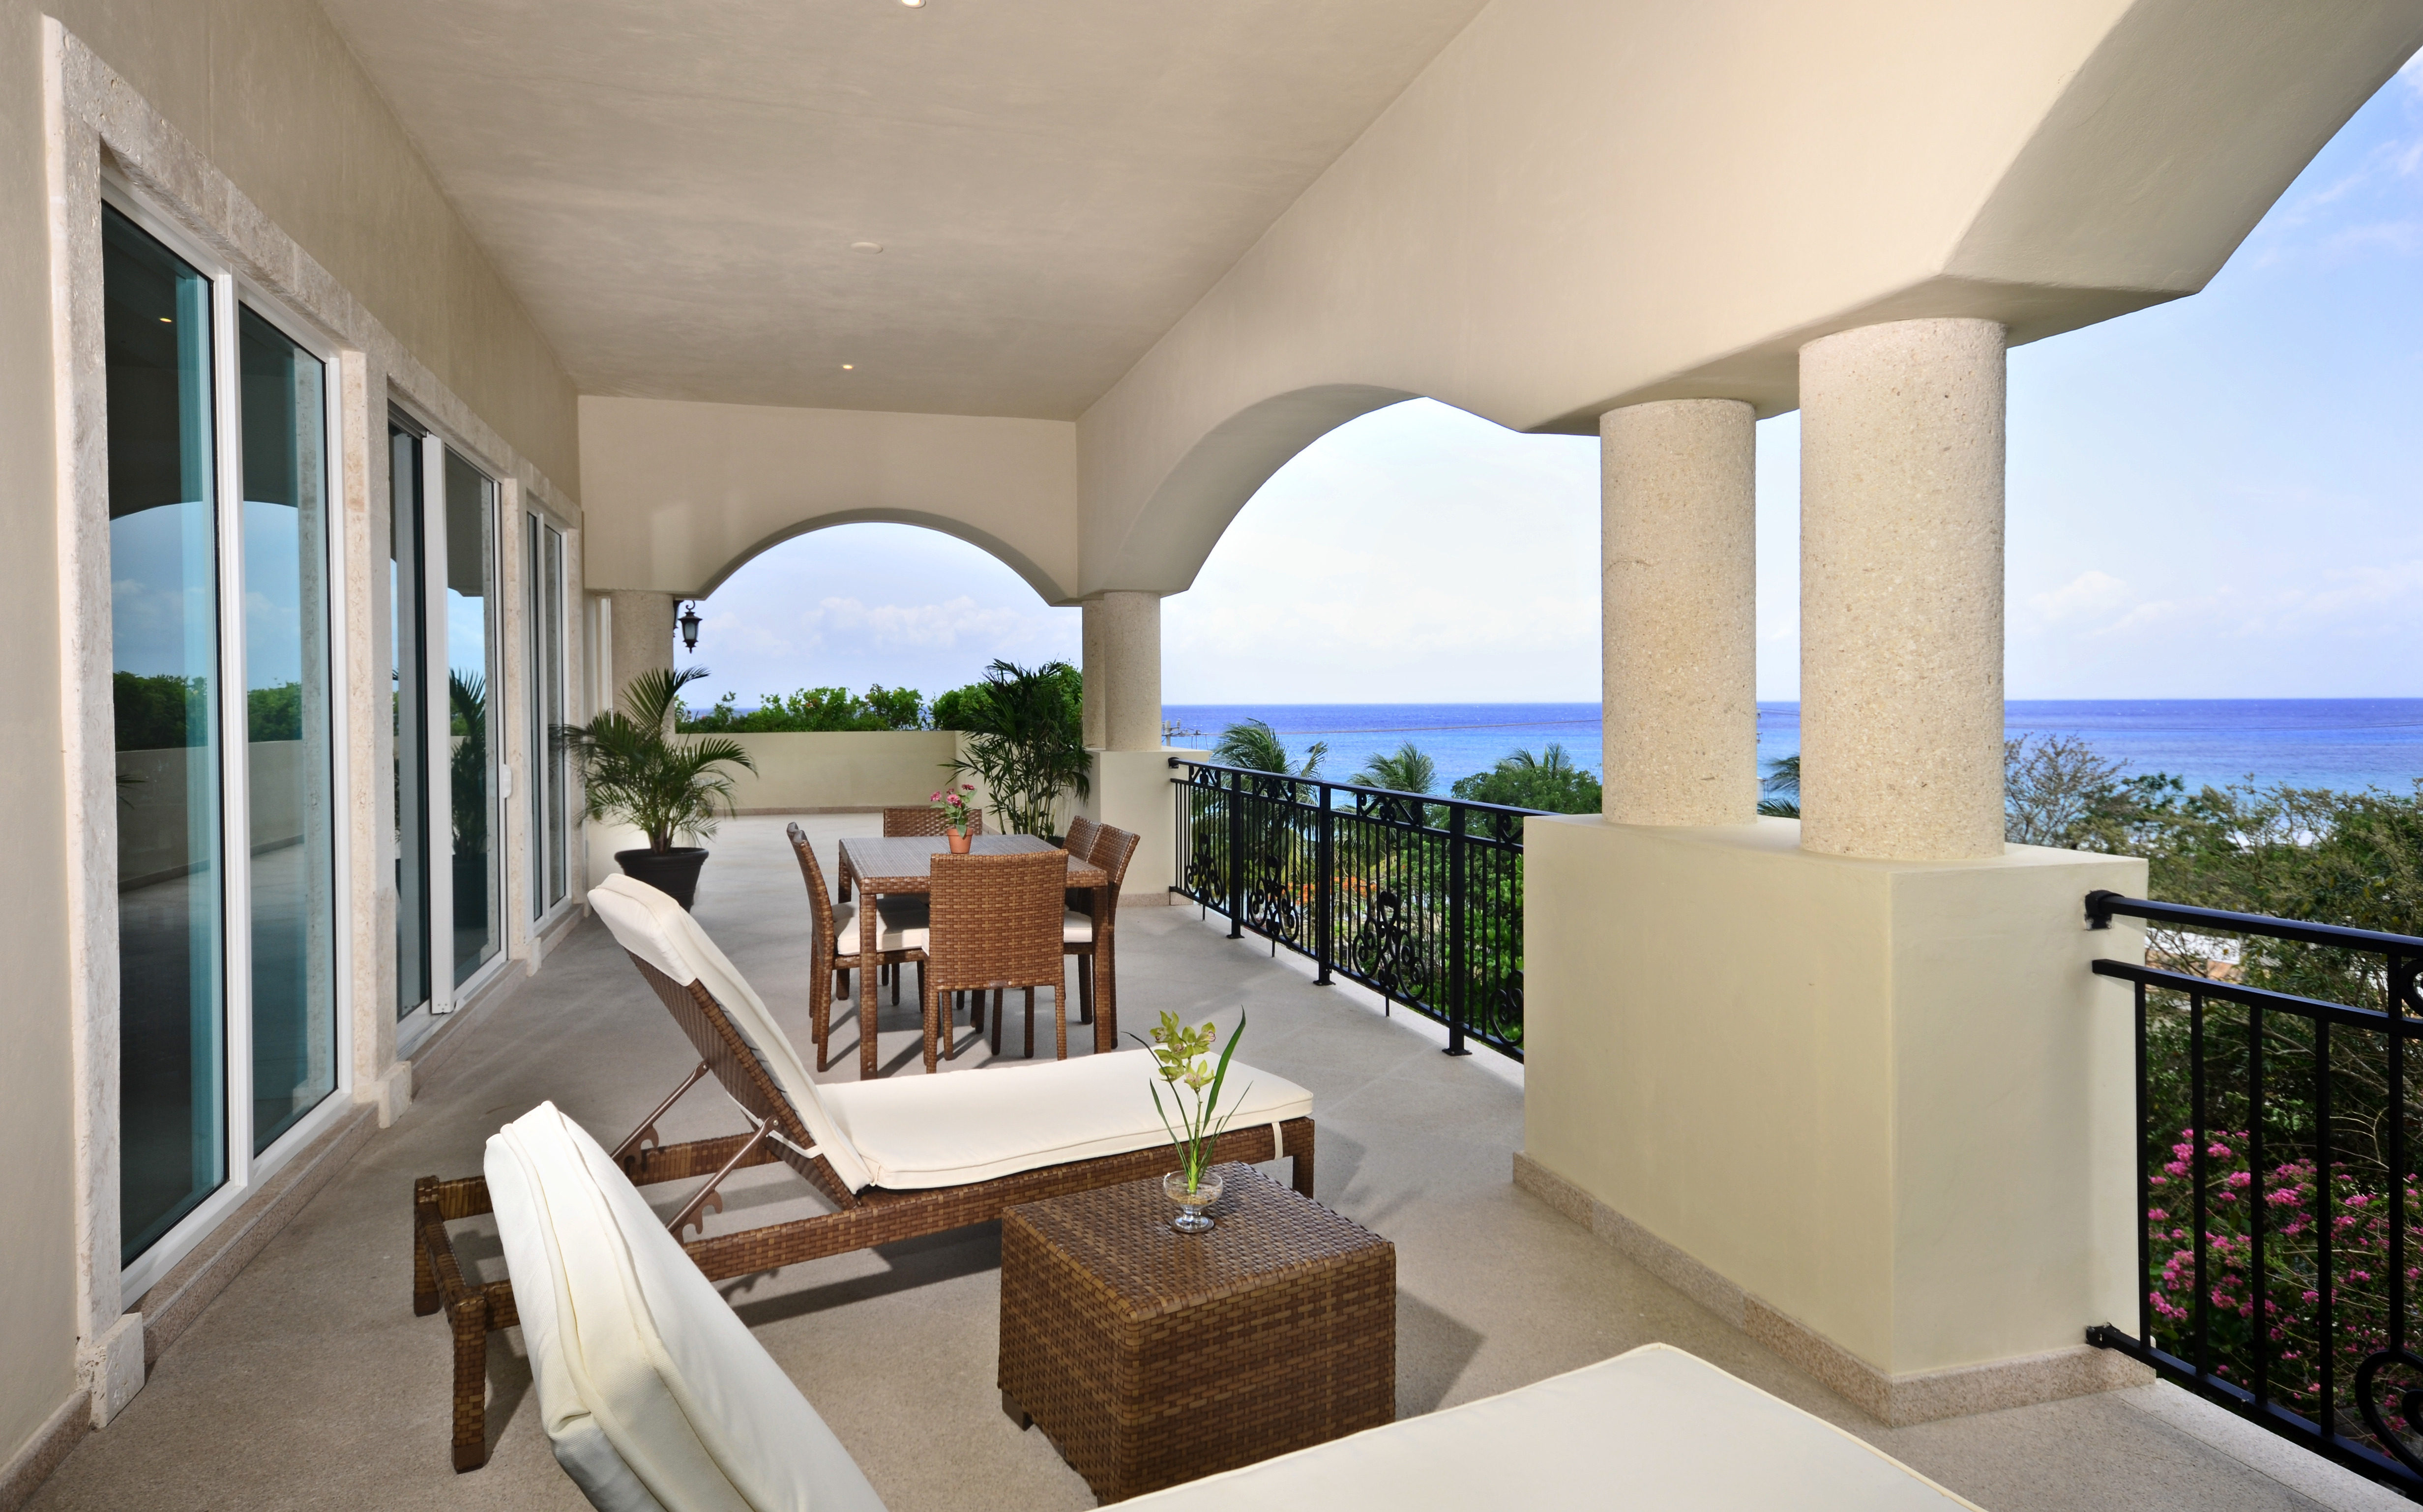 Oceanfront property mexico large terrace amazing panoramic view